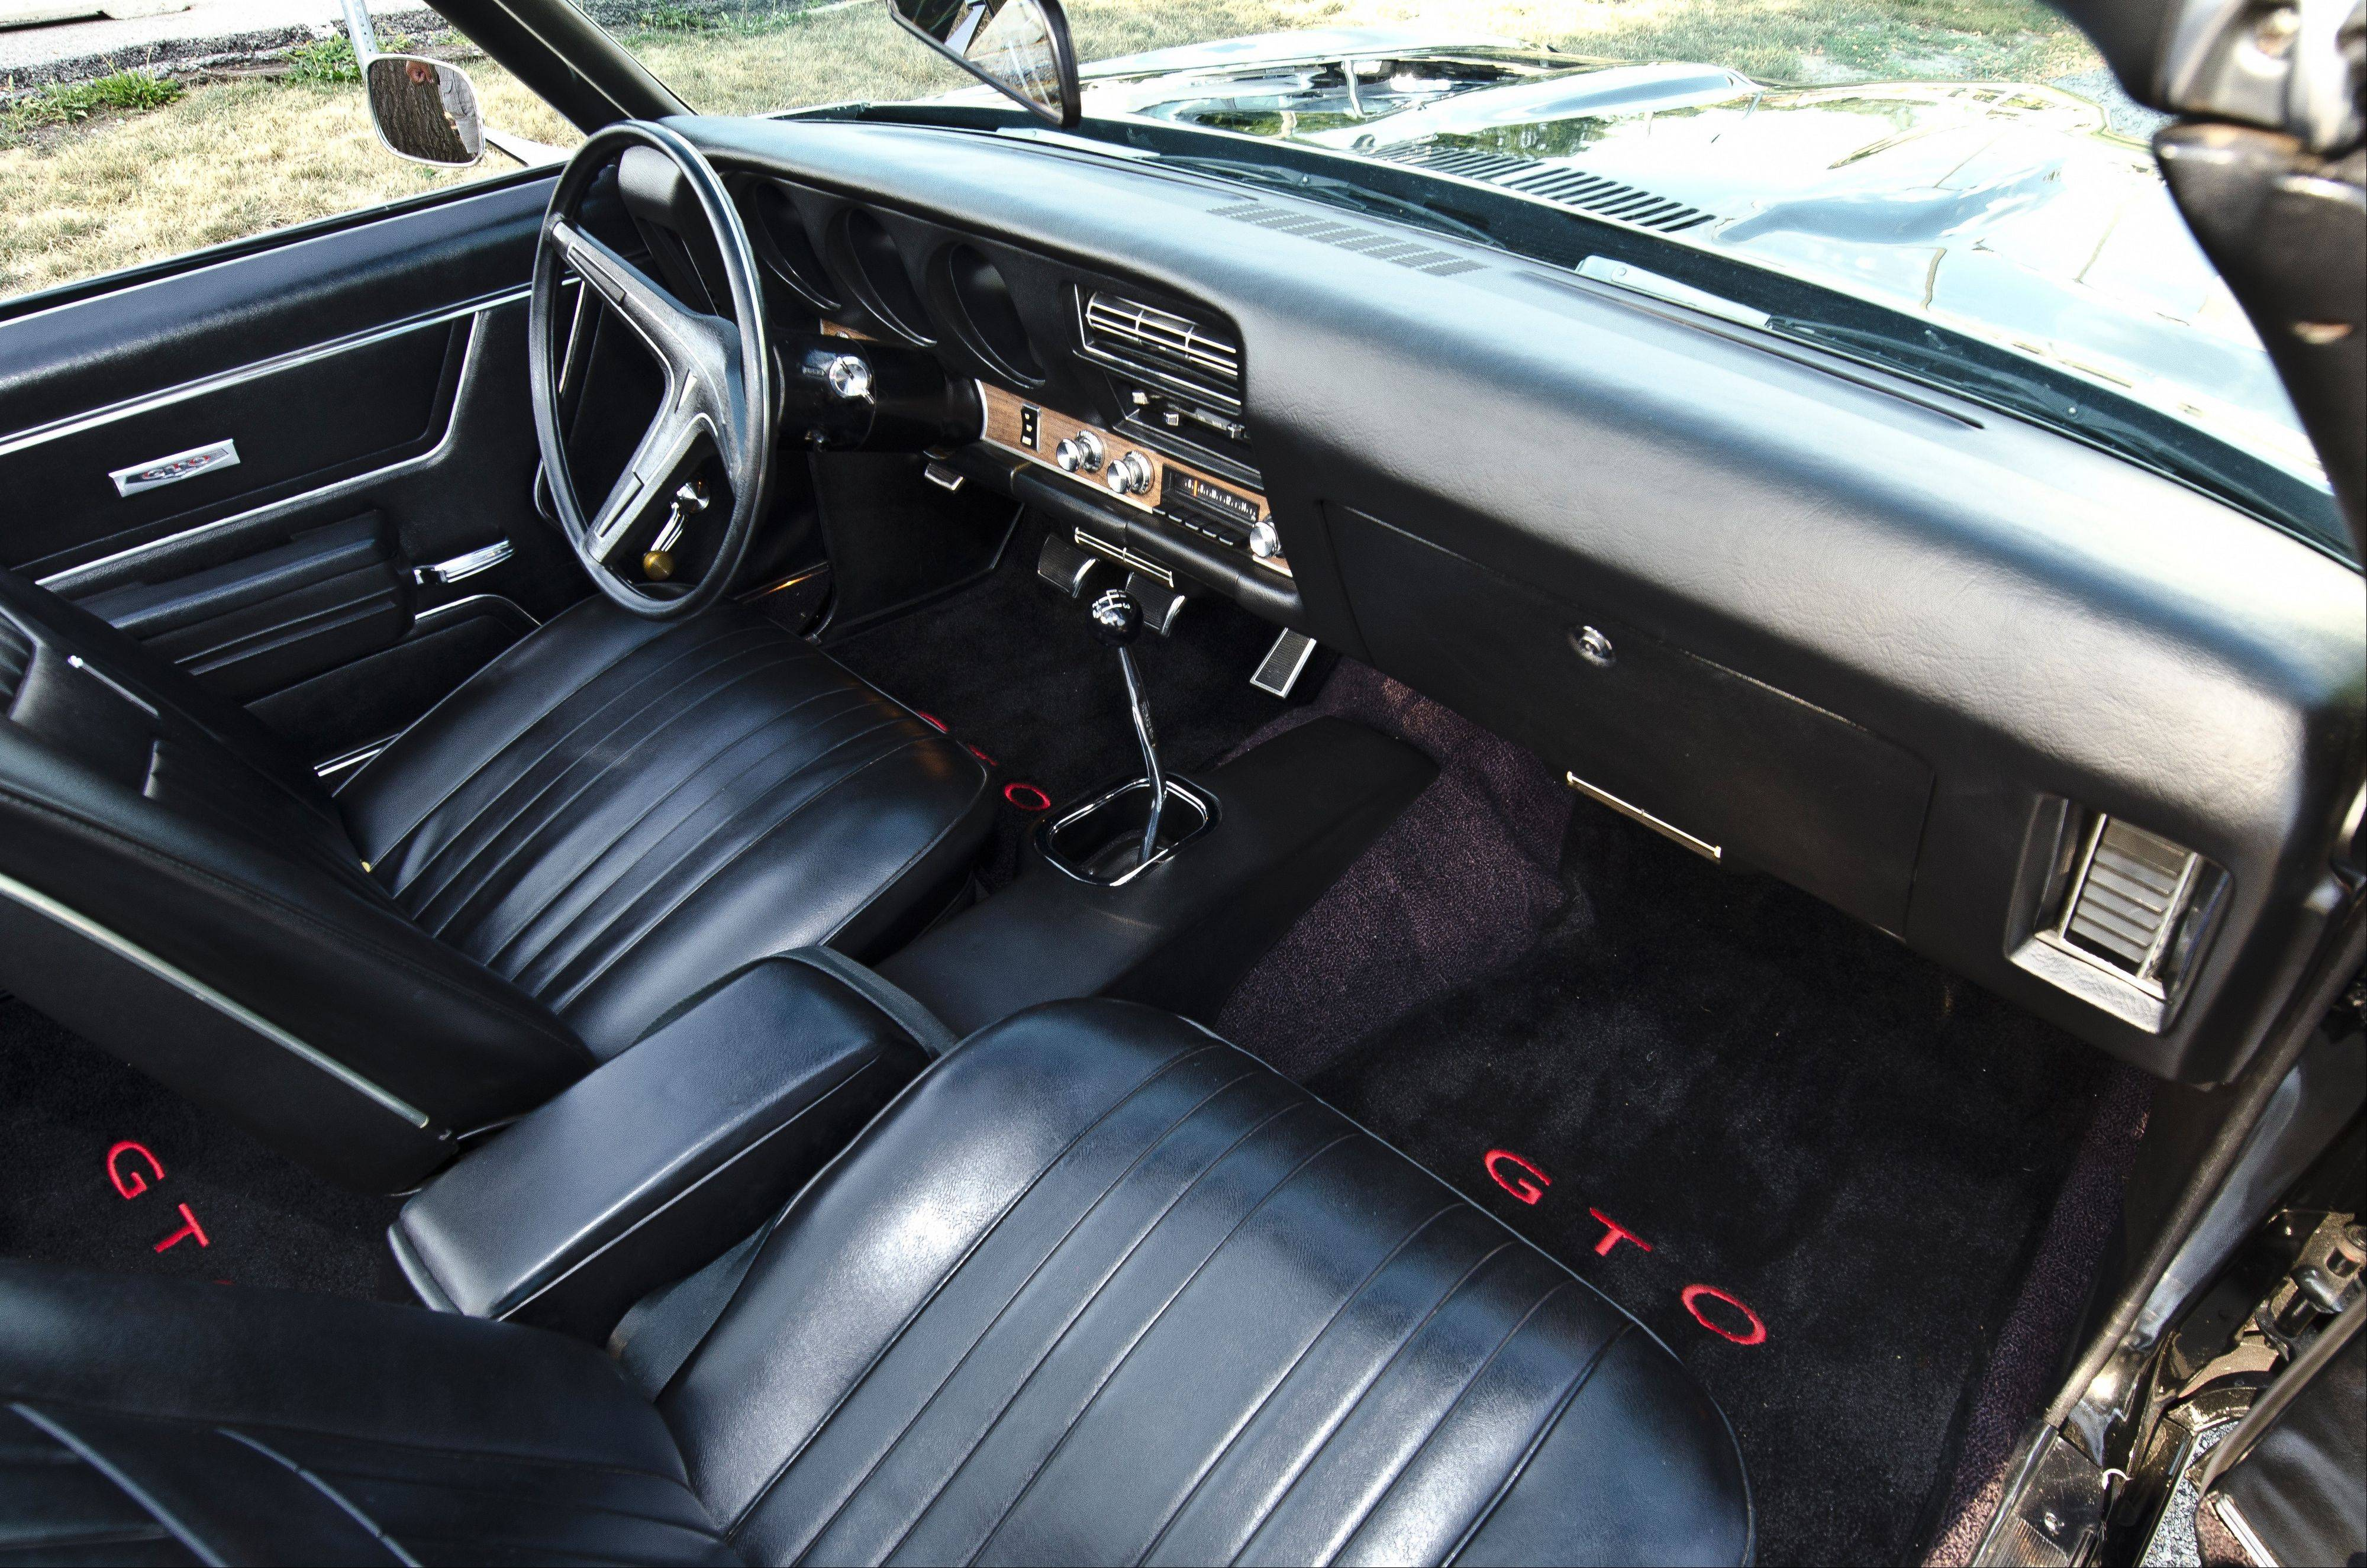 The interior of Bertram's GTO is in pristine condition.